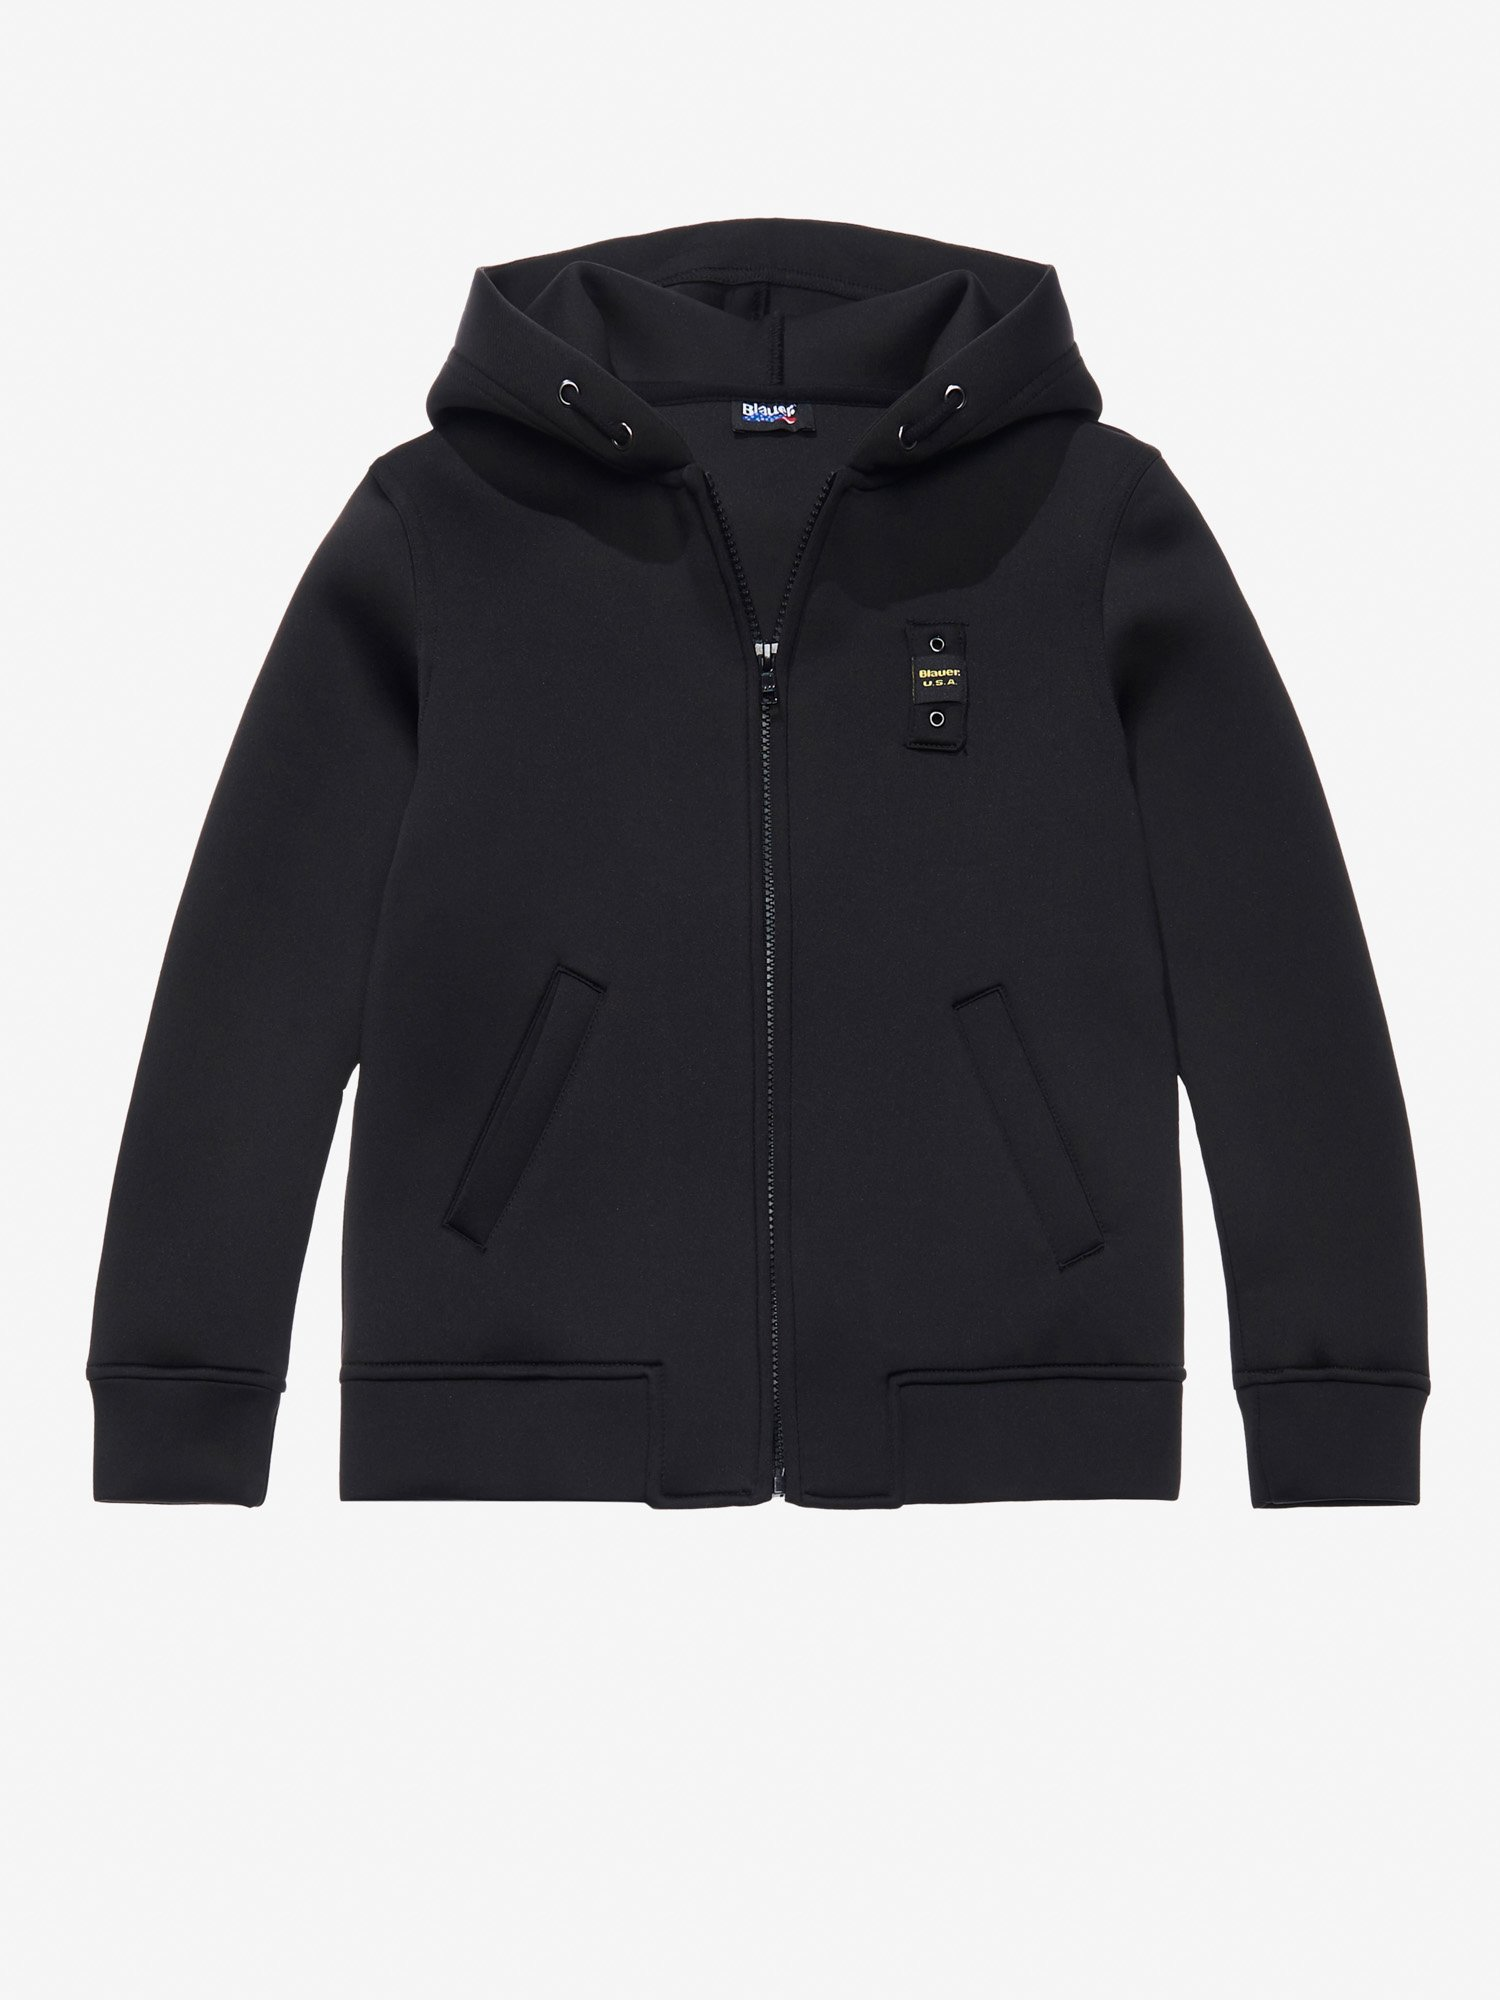 Blauer - NEOPRENE HOODED SWEATSHIRT - Black - Blauer